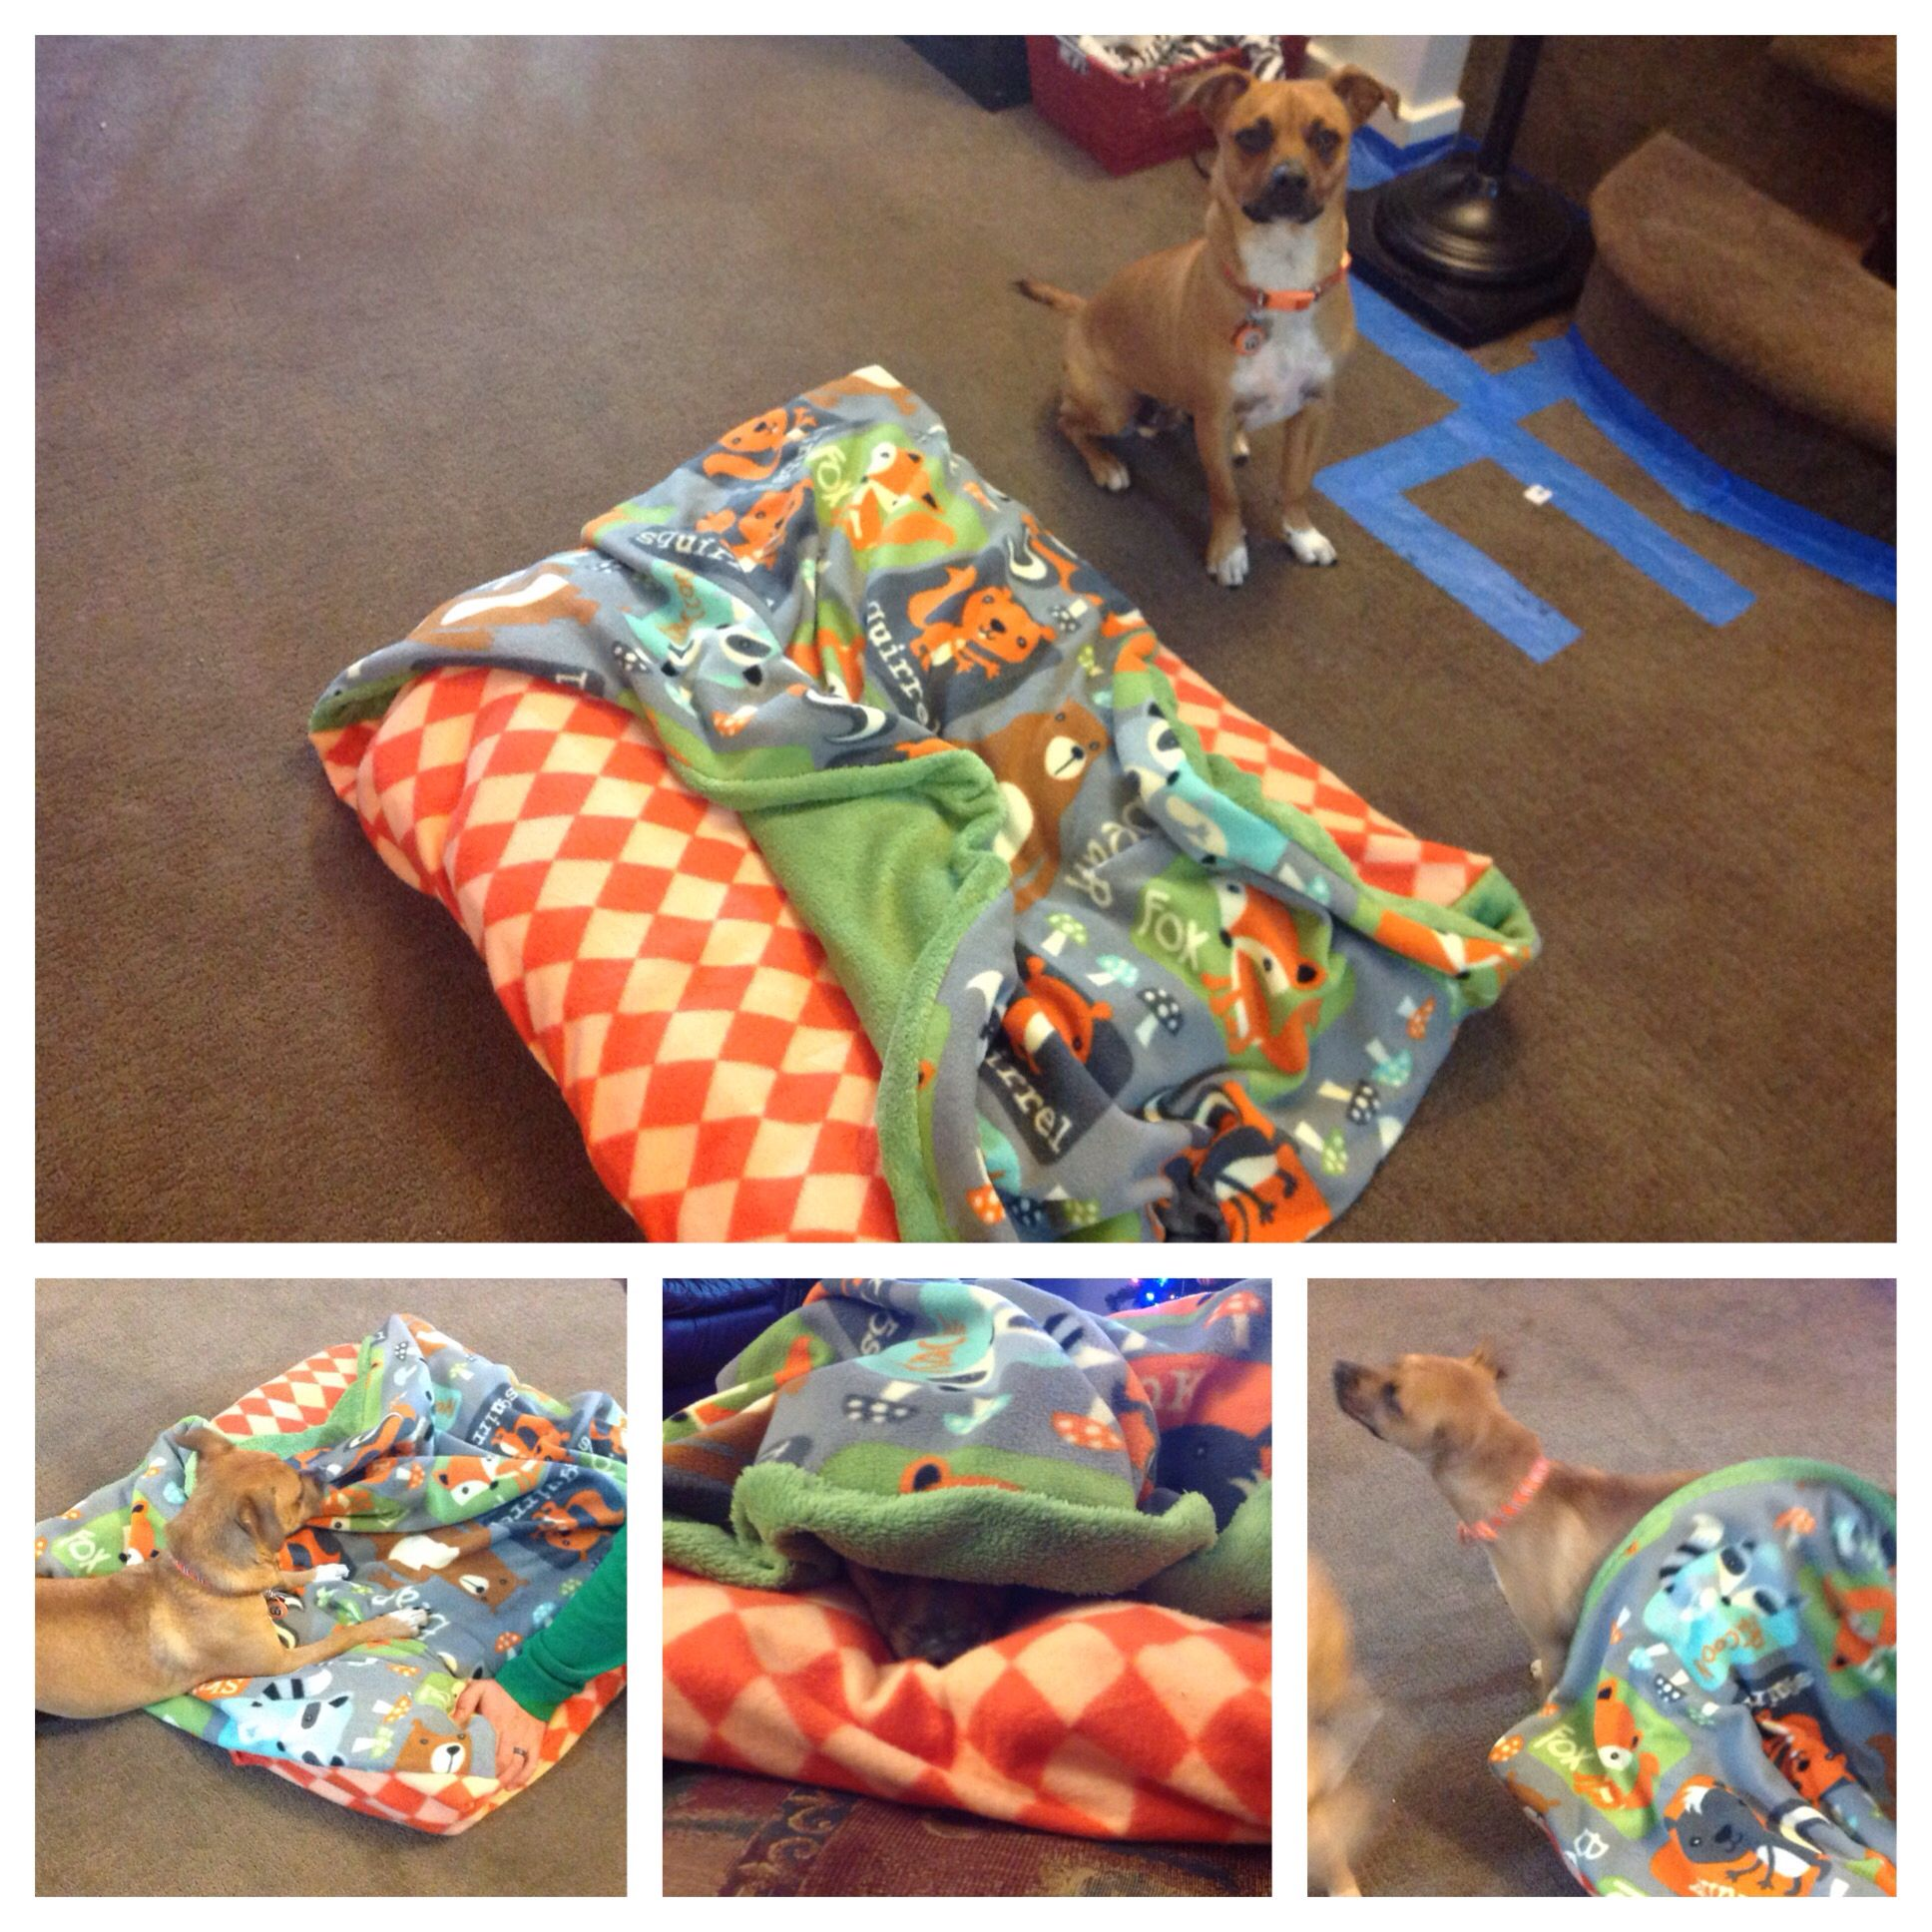 Dog Envelope Bed With Extra Fabric Along The Top For Their Own Covers To Crawl Under Diy Dog Bed Dog Pattern Dog House Diy